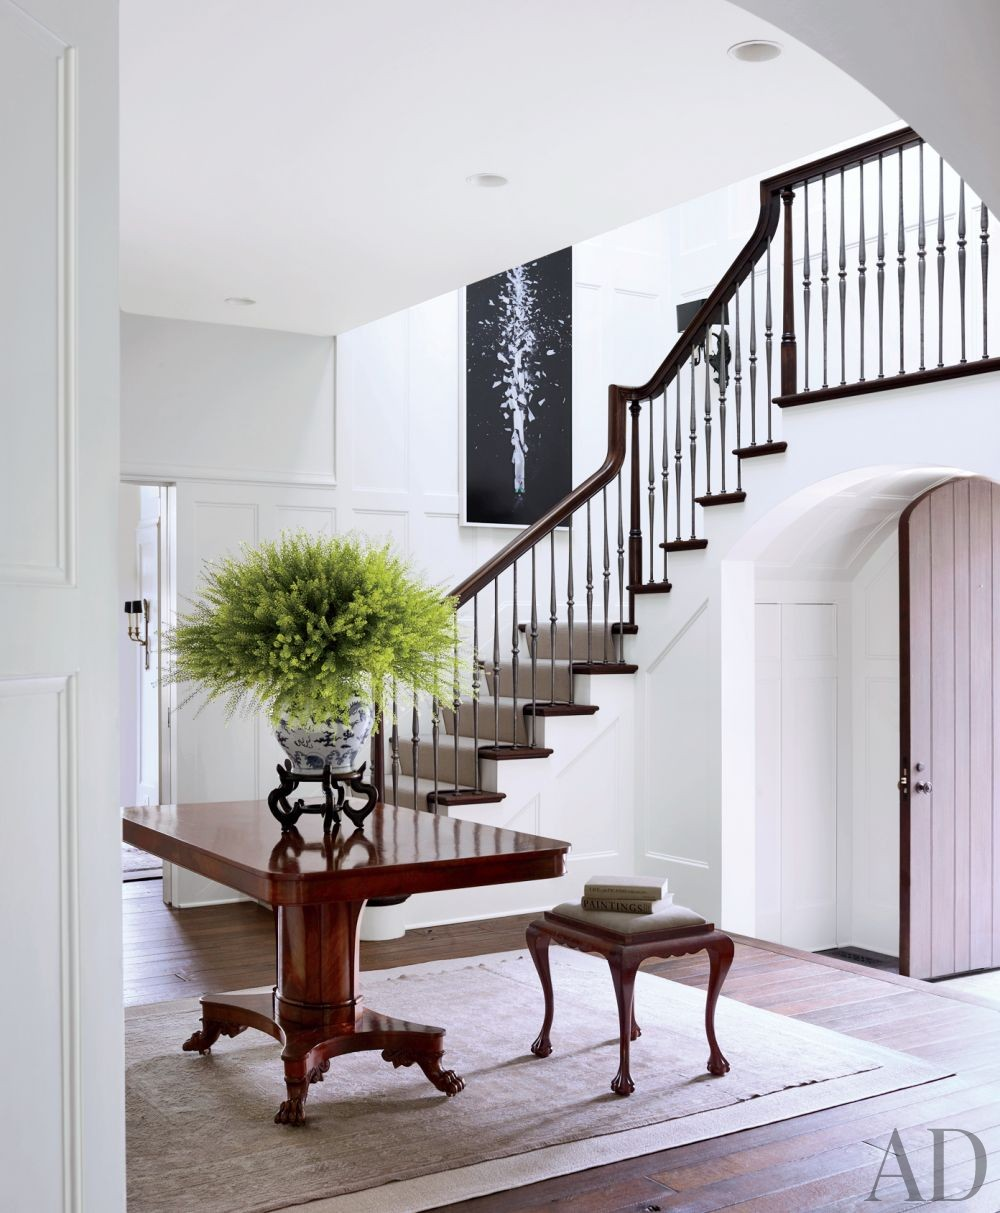 Traditional Entrance Hall by Darryl Carter Inc. and Donald Lococo Architects in Washington, D.C.